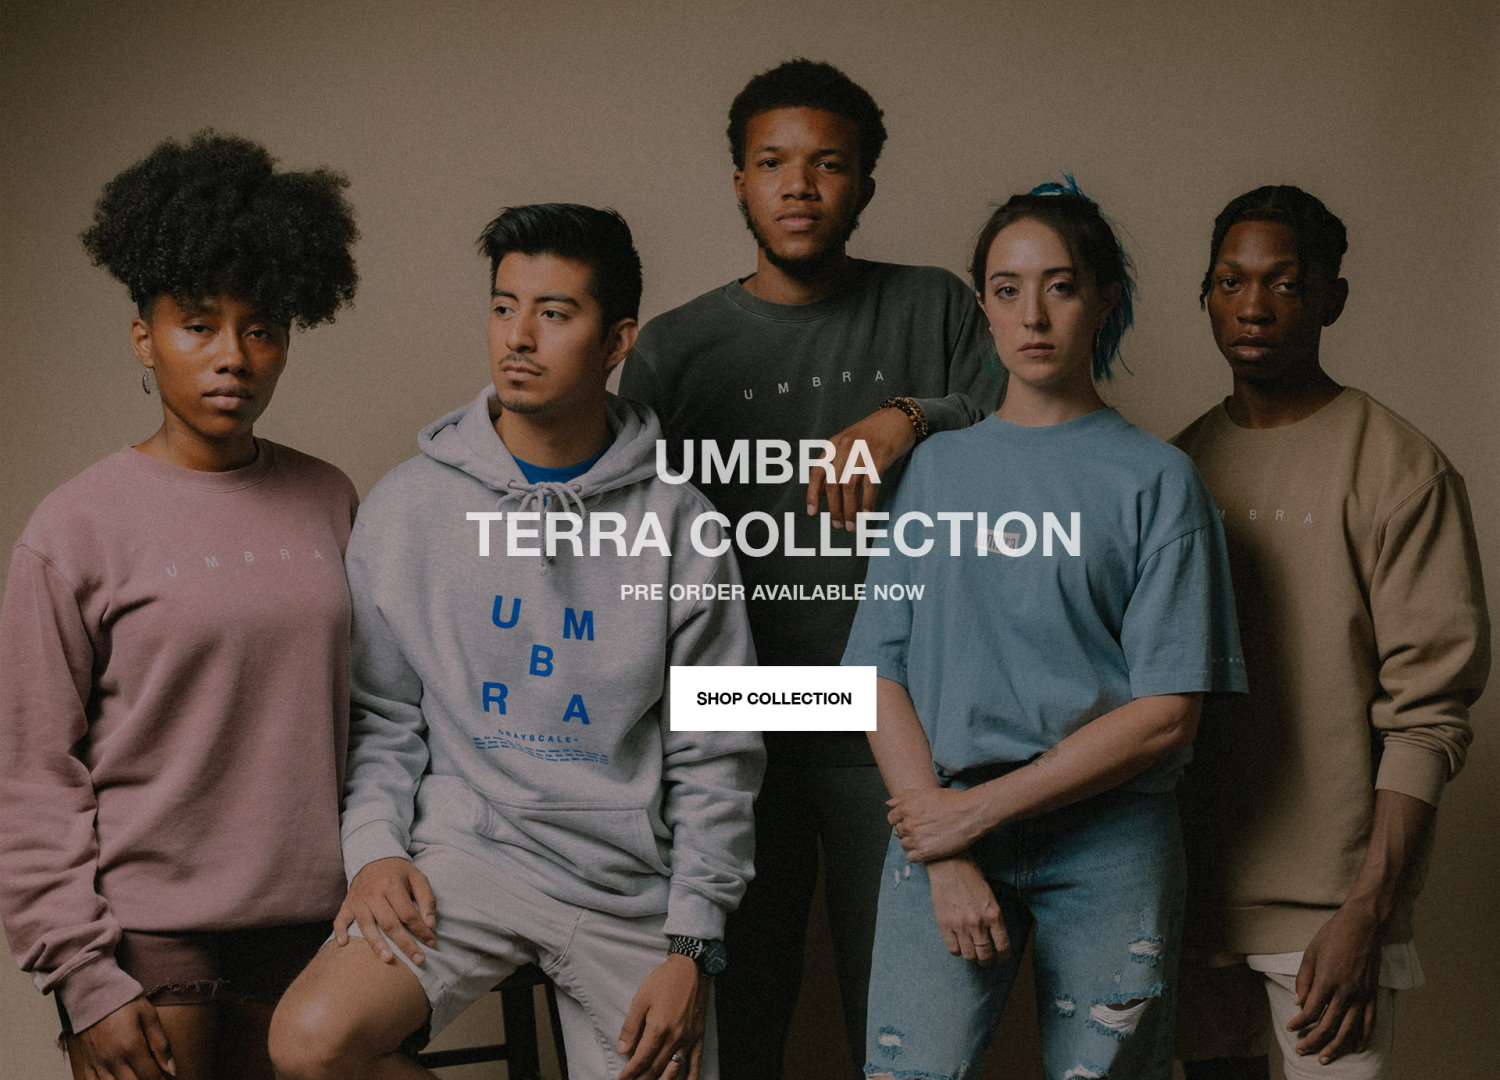 UMBRA TERRA COLLECTION AVAILABLE NOW